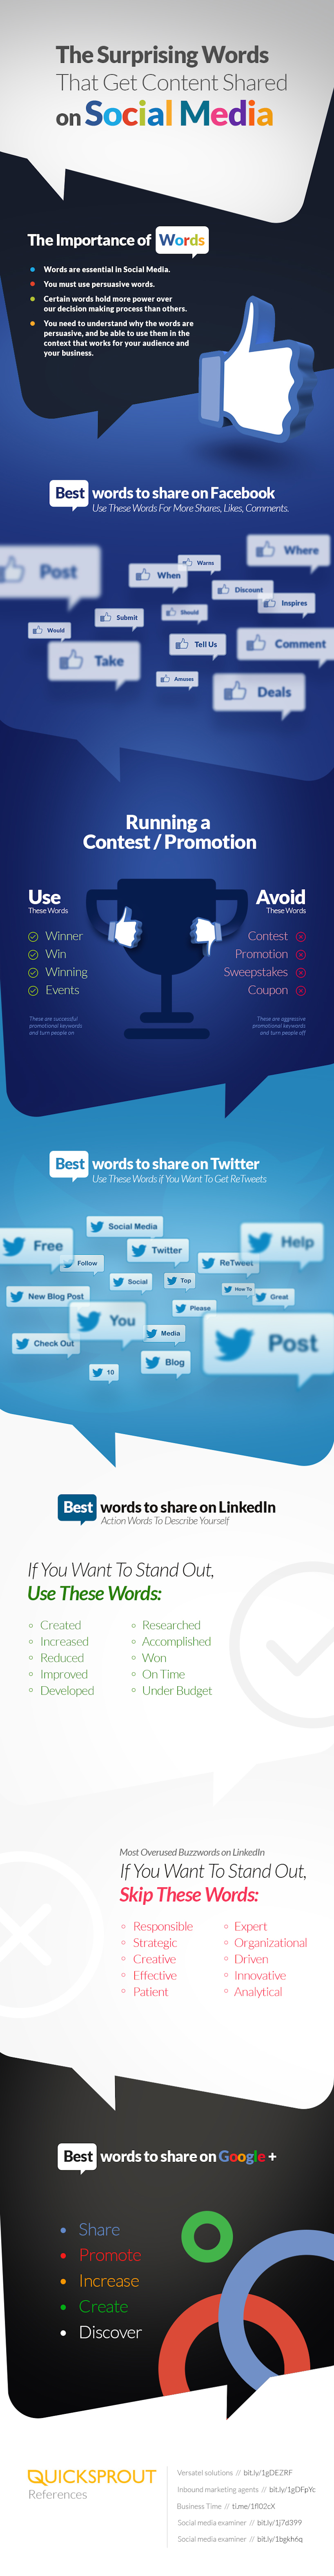 Surprising Words That Get Content Shared on Social Media